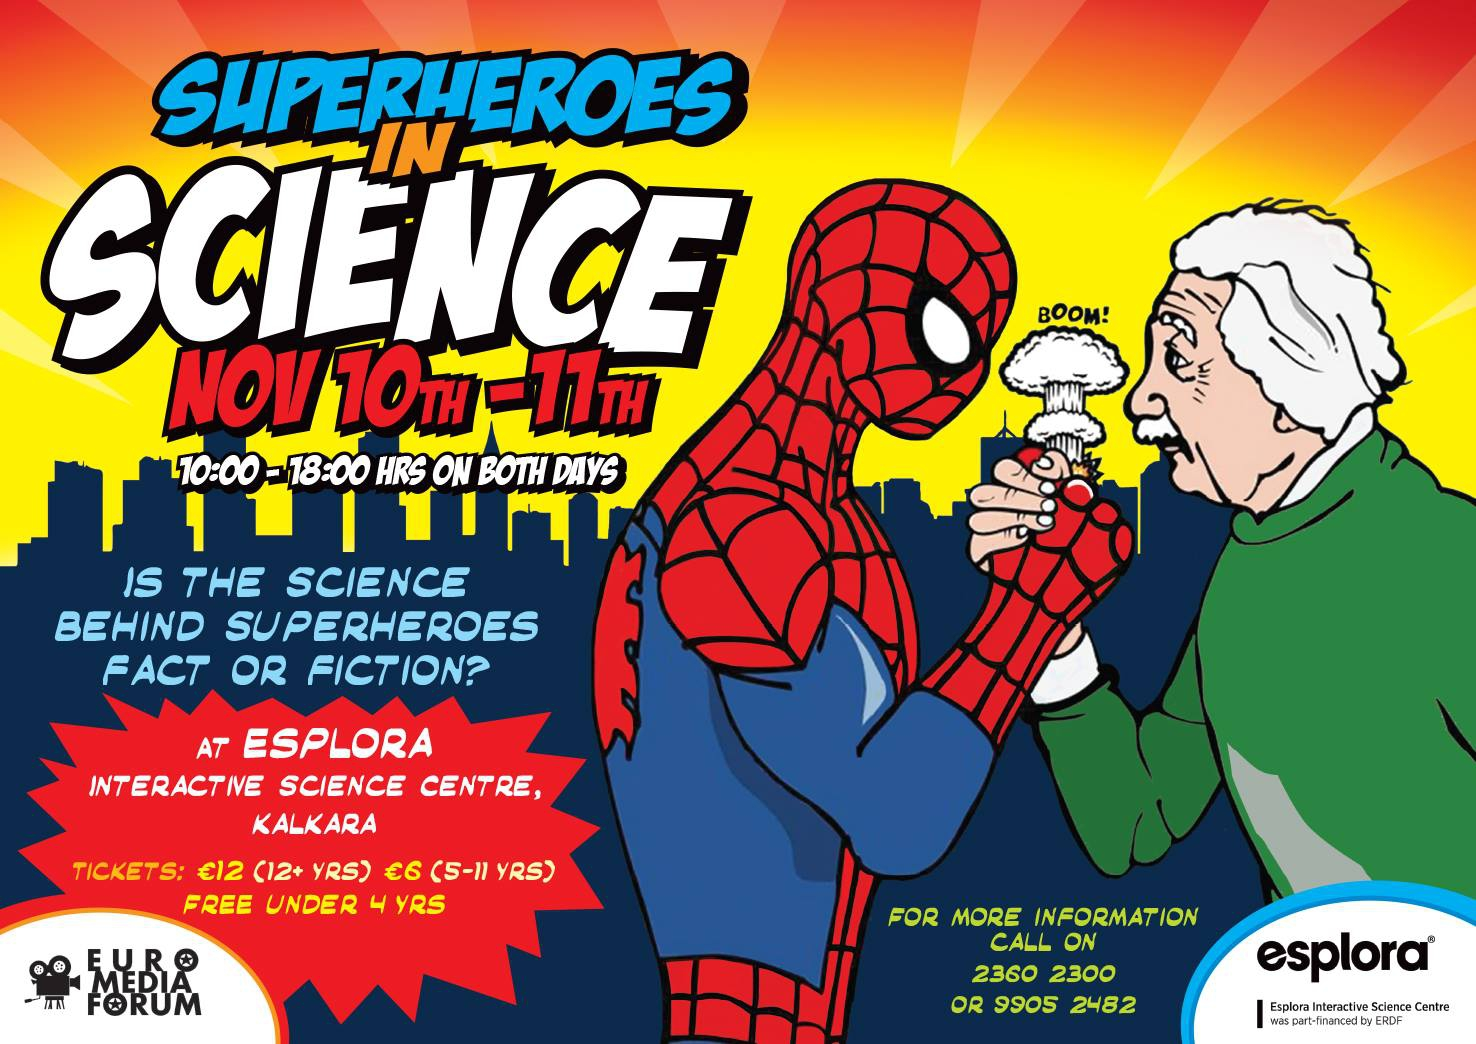 Superheroes in Science